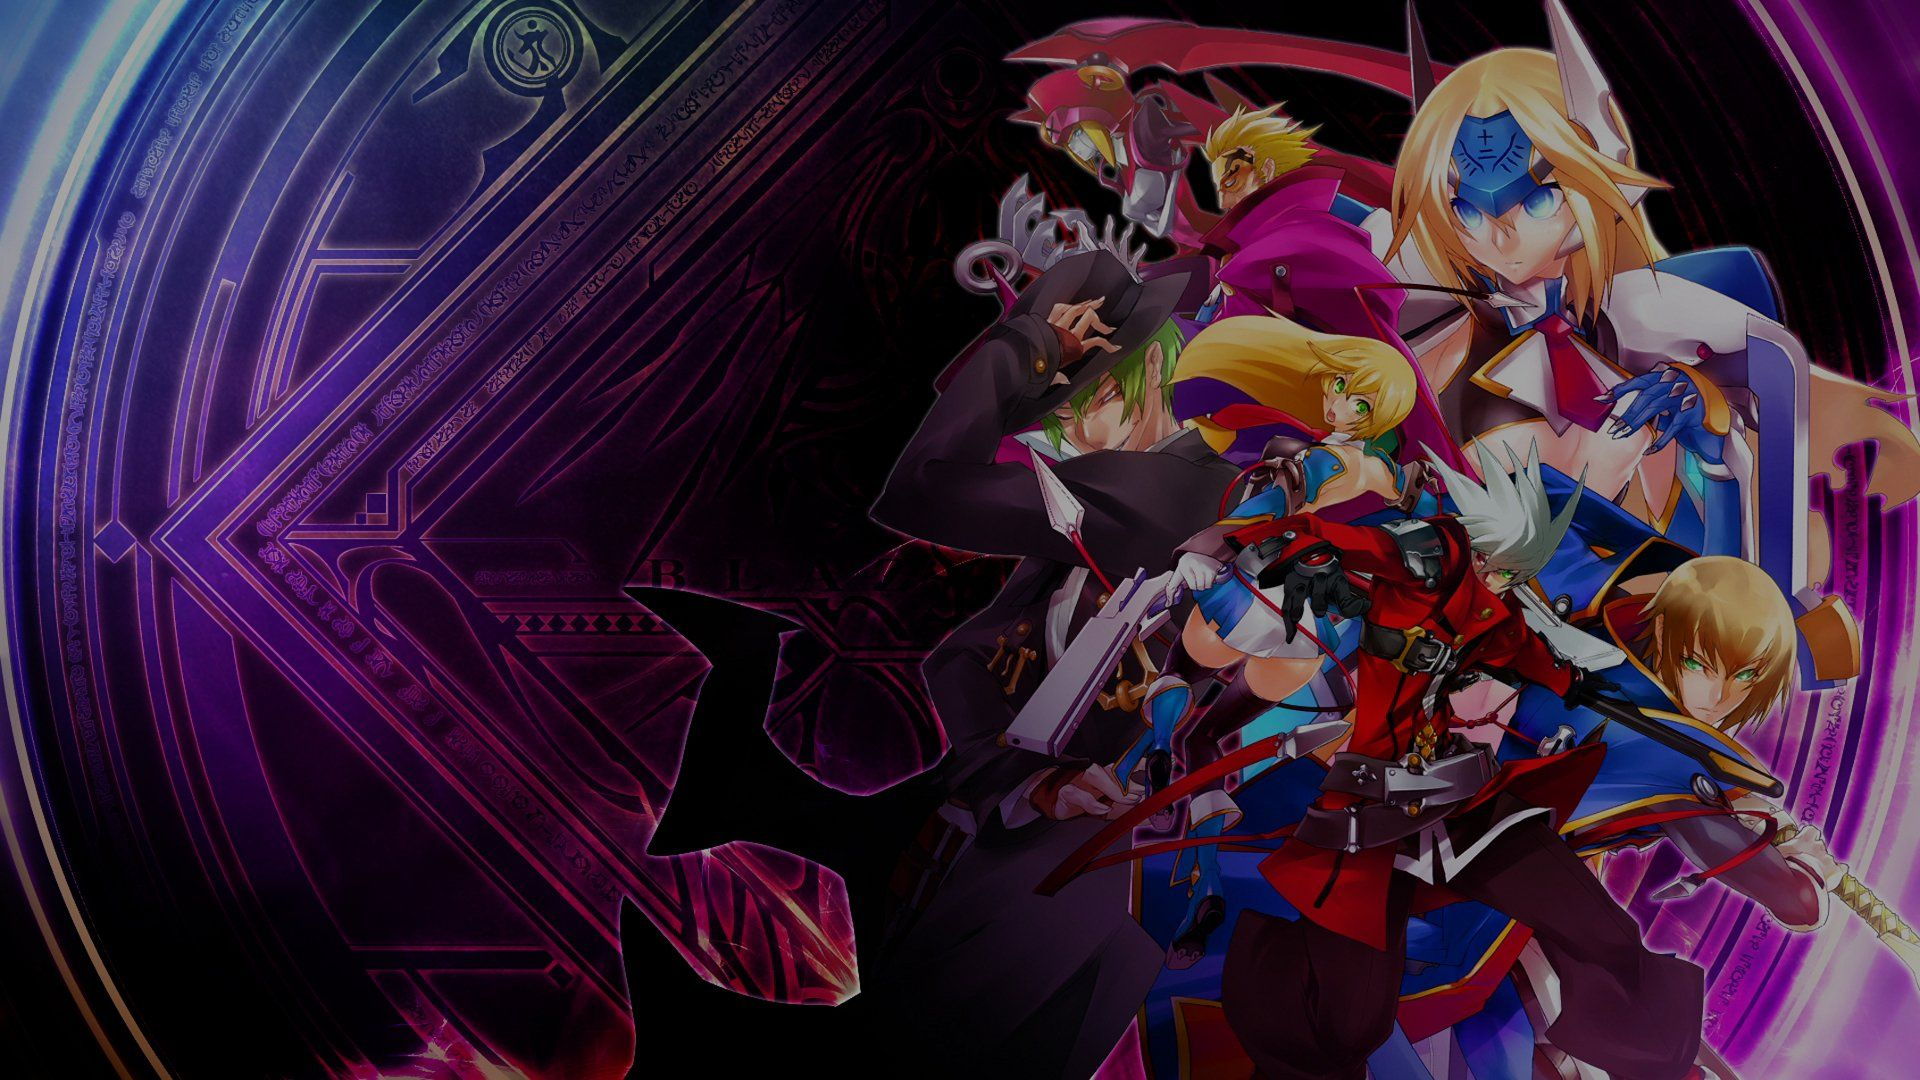 1920x1080 Blazblue Calamity Trigger Wallpaper Background Image View Download Comment And Rate Wallpape Wallpaper Backgrounds Wallpaper Background Images